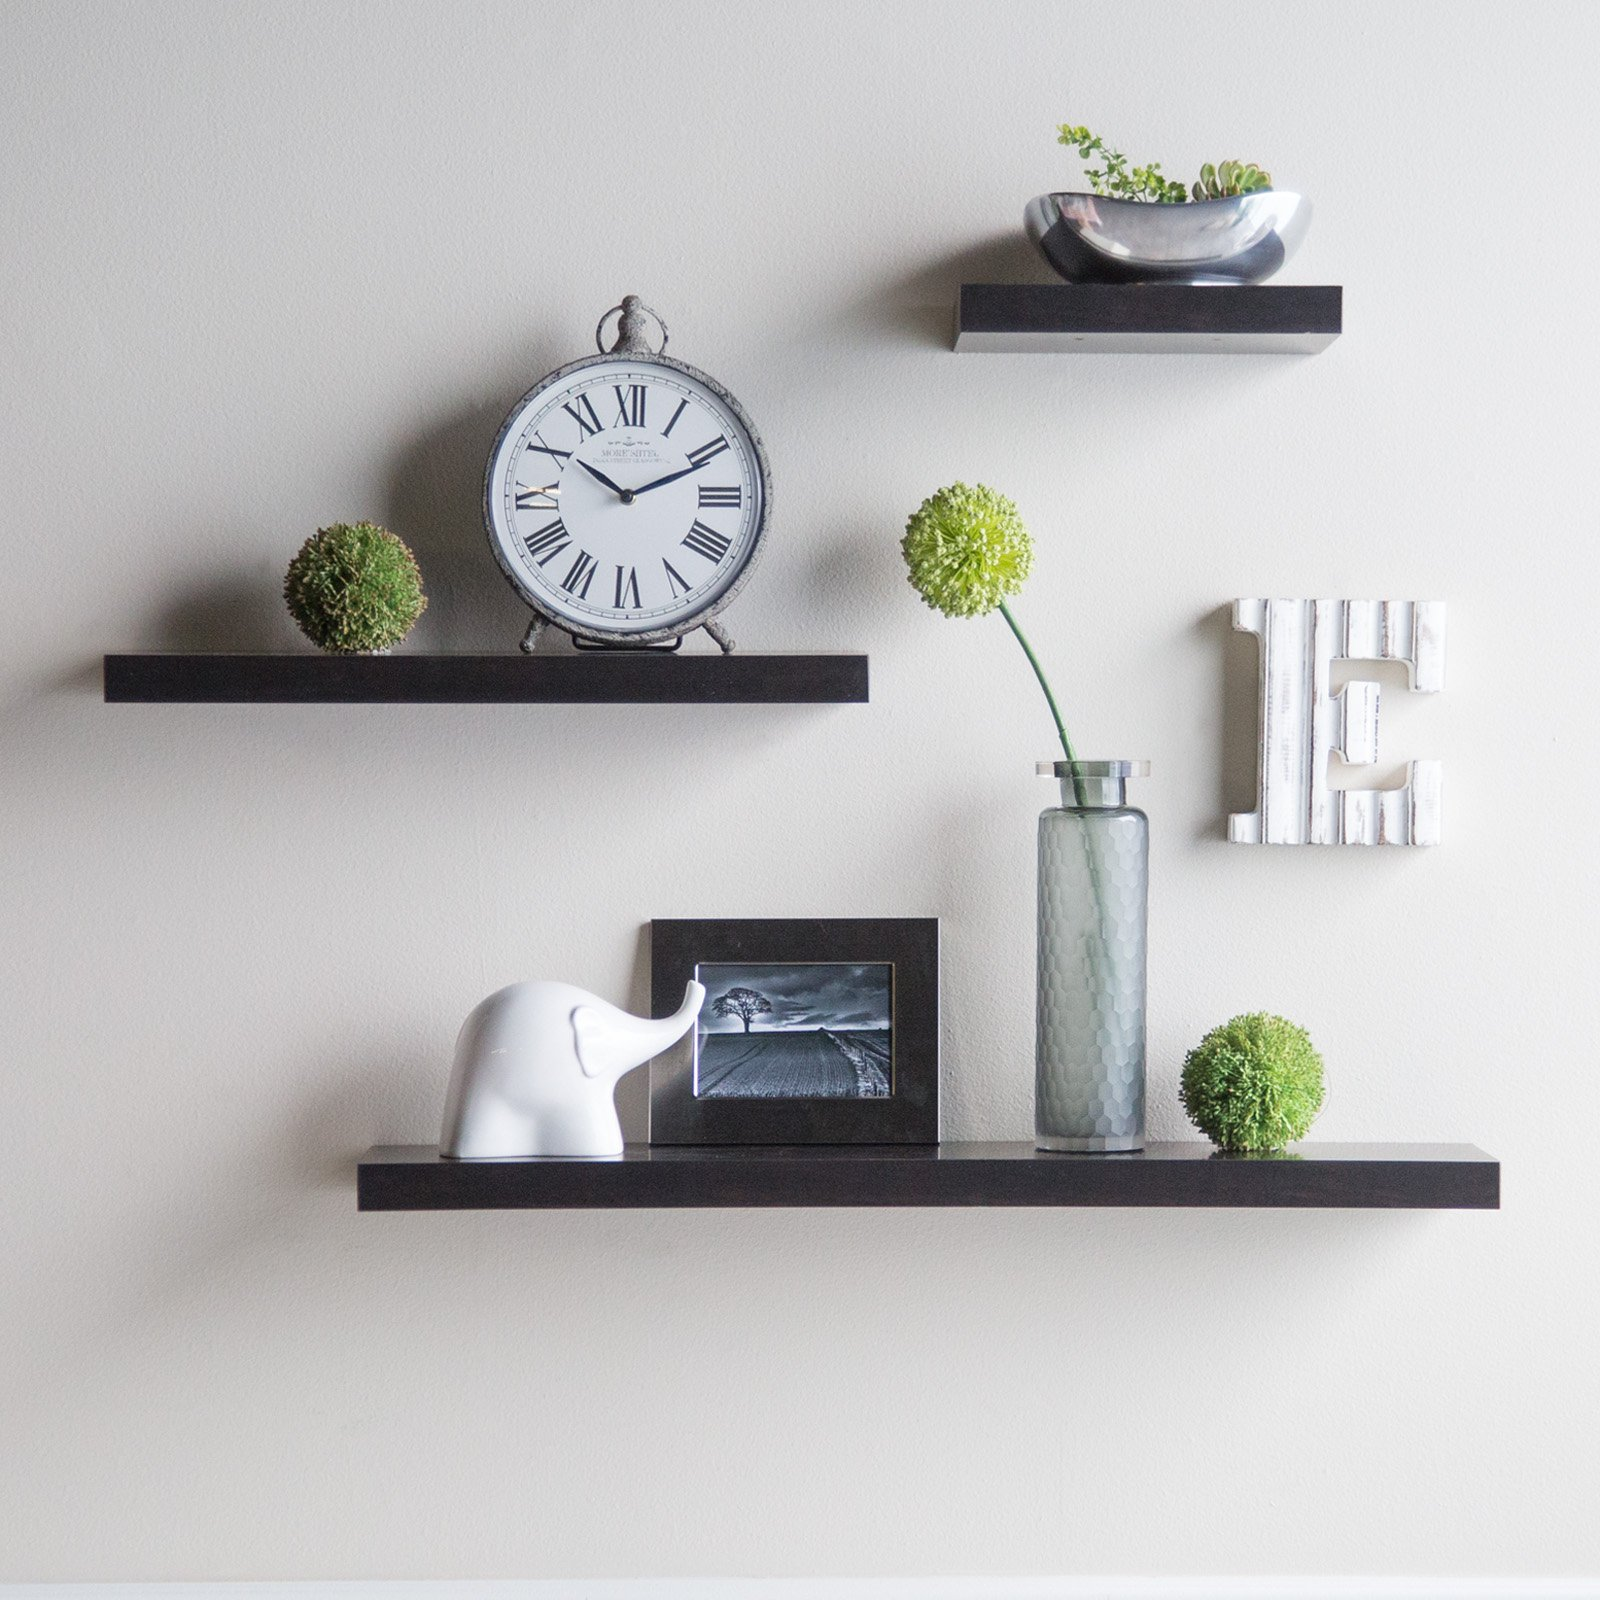 Charming Hudson Easy Mount Floating Shelves   3 Pk. (36 In./24 In./12 In.)    Espresso   Walmart.com